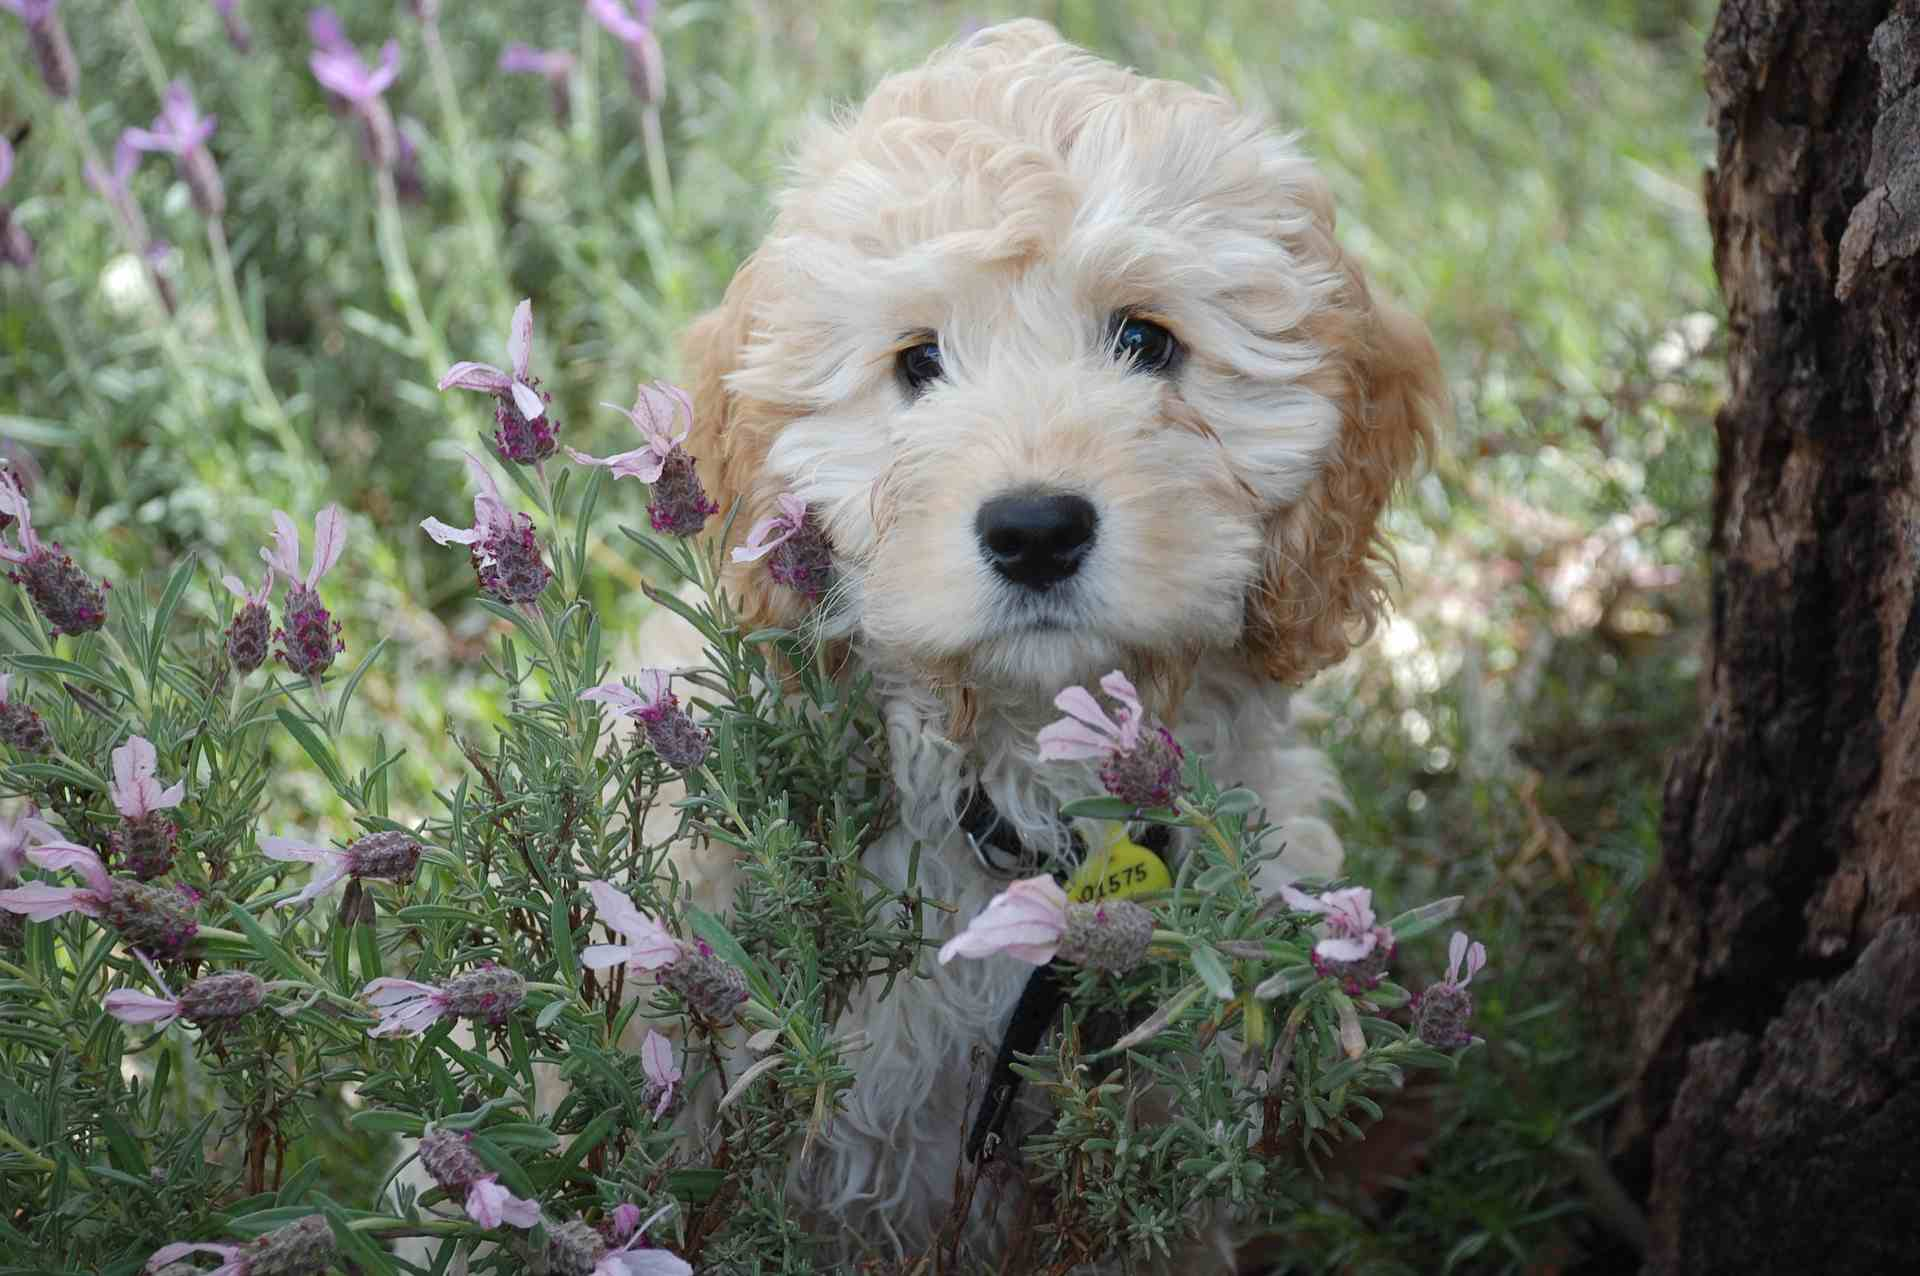 Small dog sitting in flowers